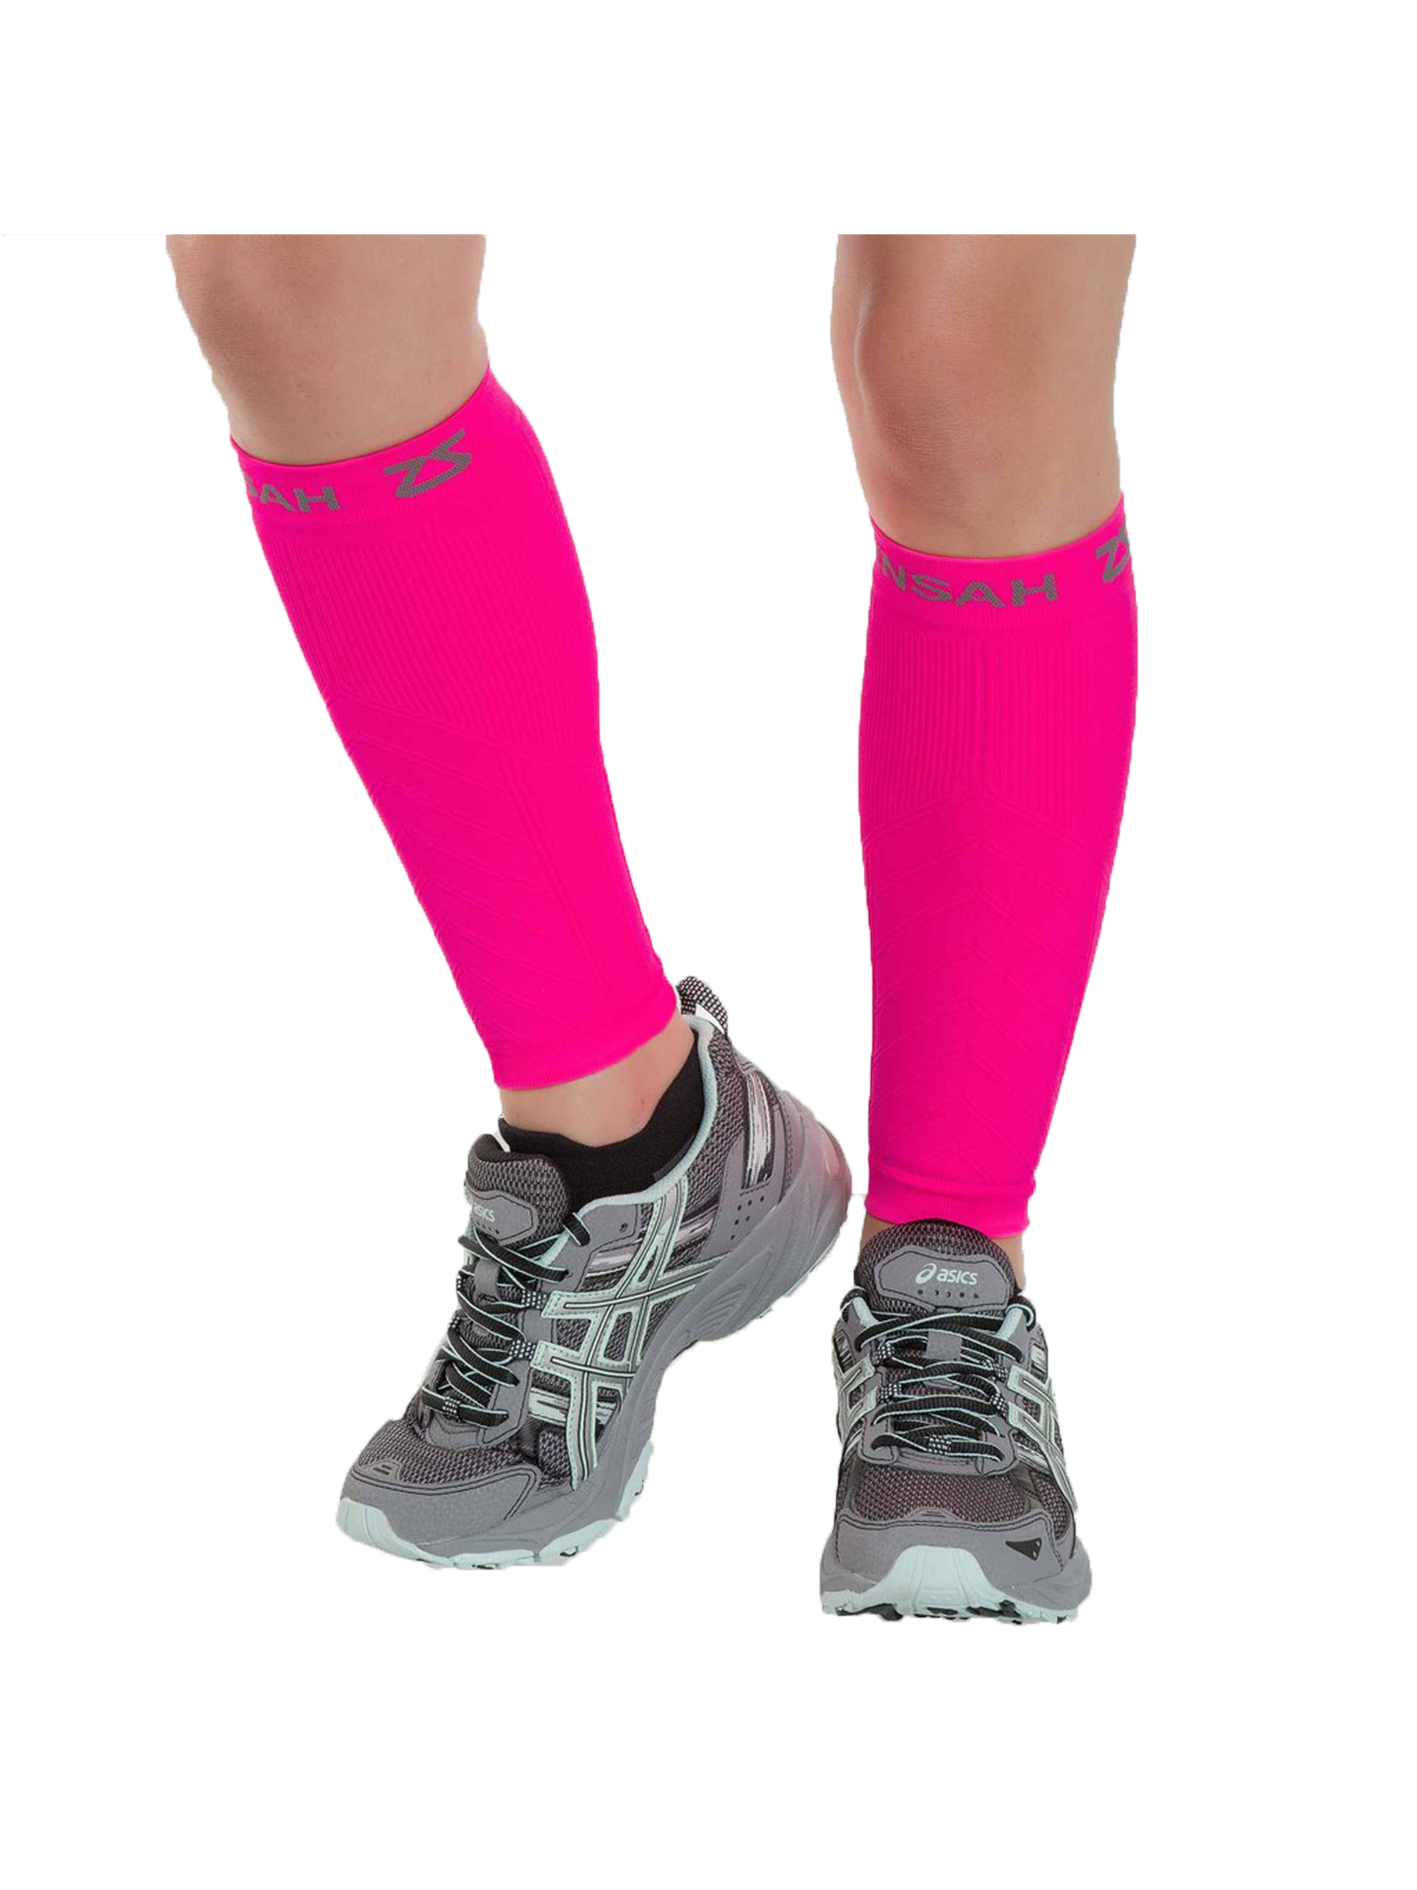 Compression Leg Sleeves - Neon Pink